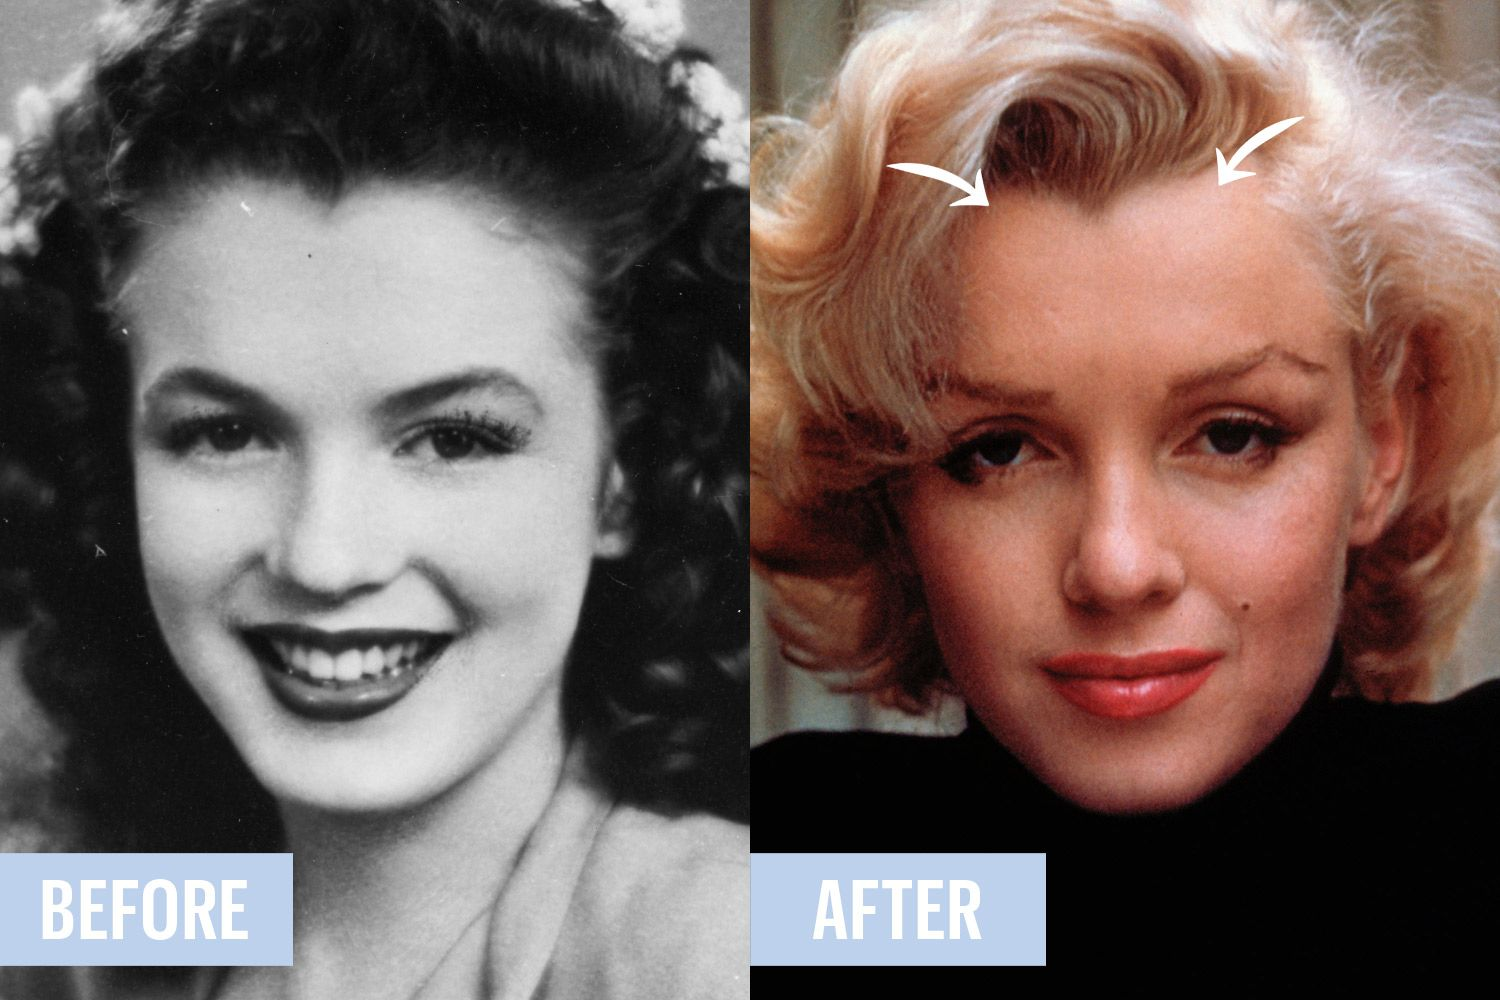 old hollywood plastic surgery secrets: here are 4 weird ways classic